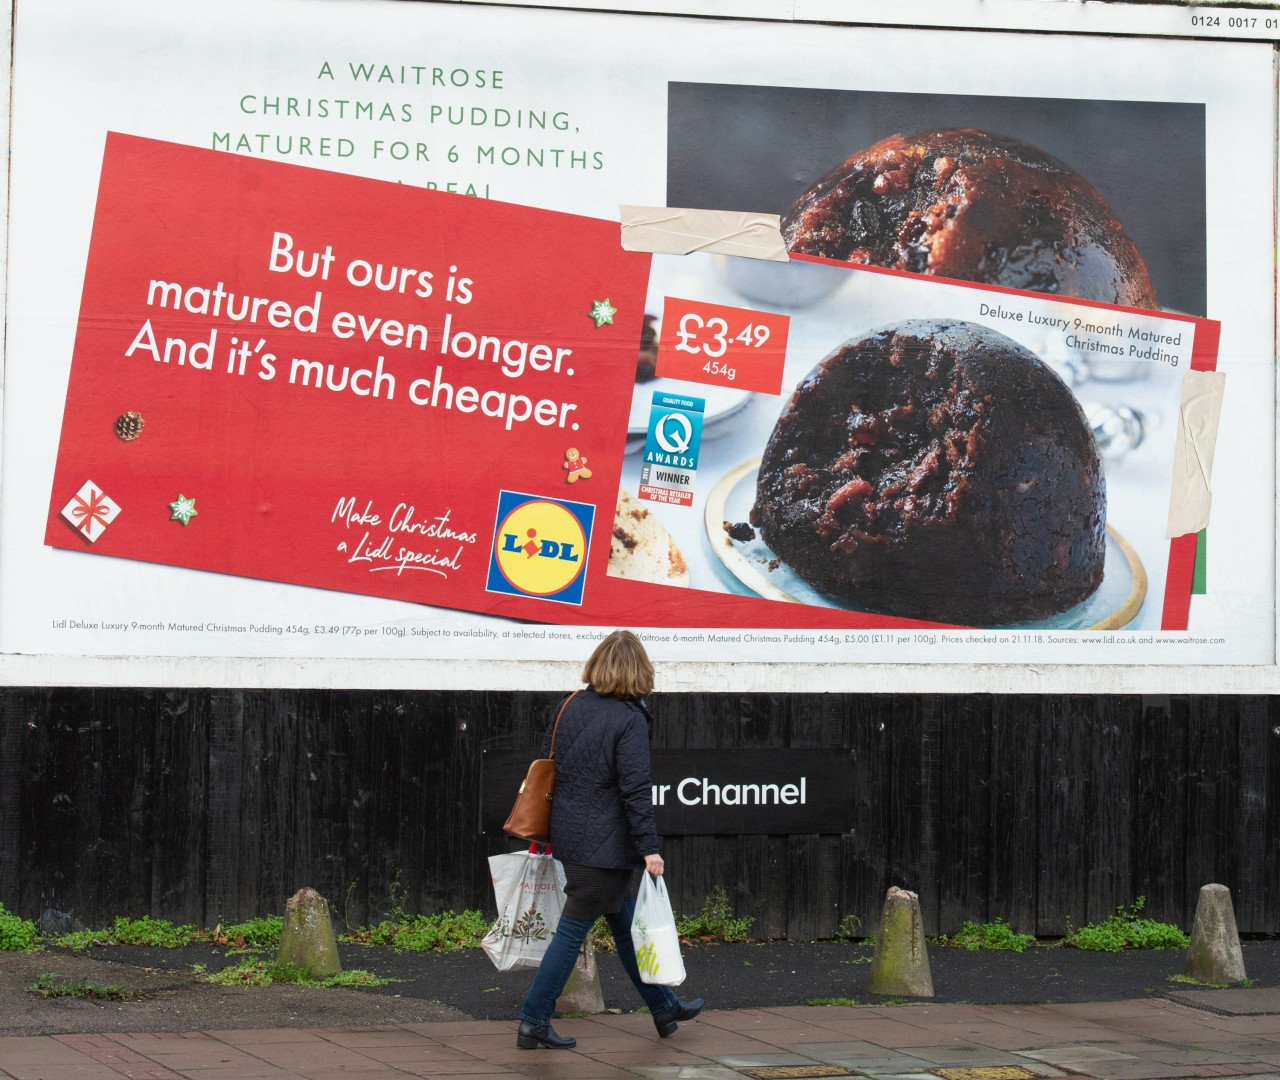 U.K. retailer Lidl showcasing the idea of copying competitor's brand image